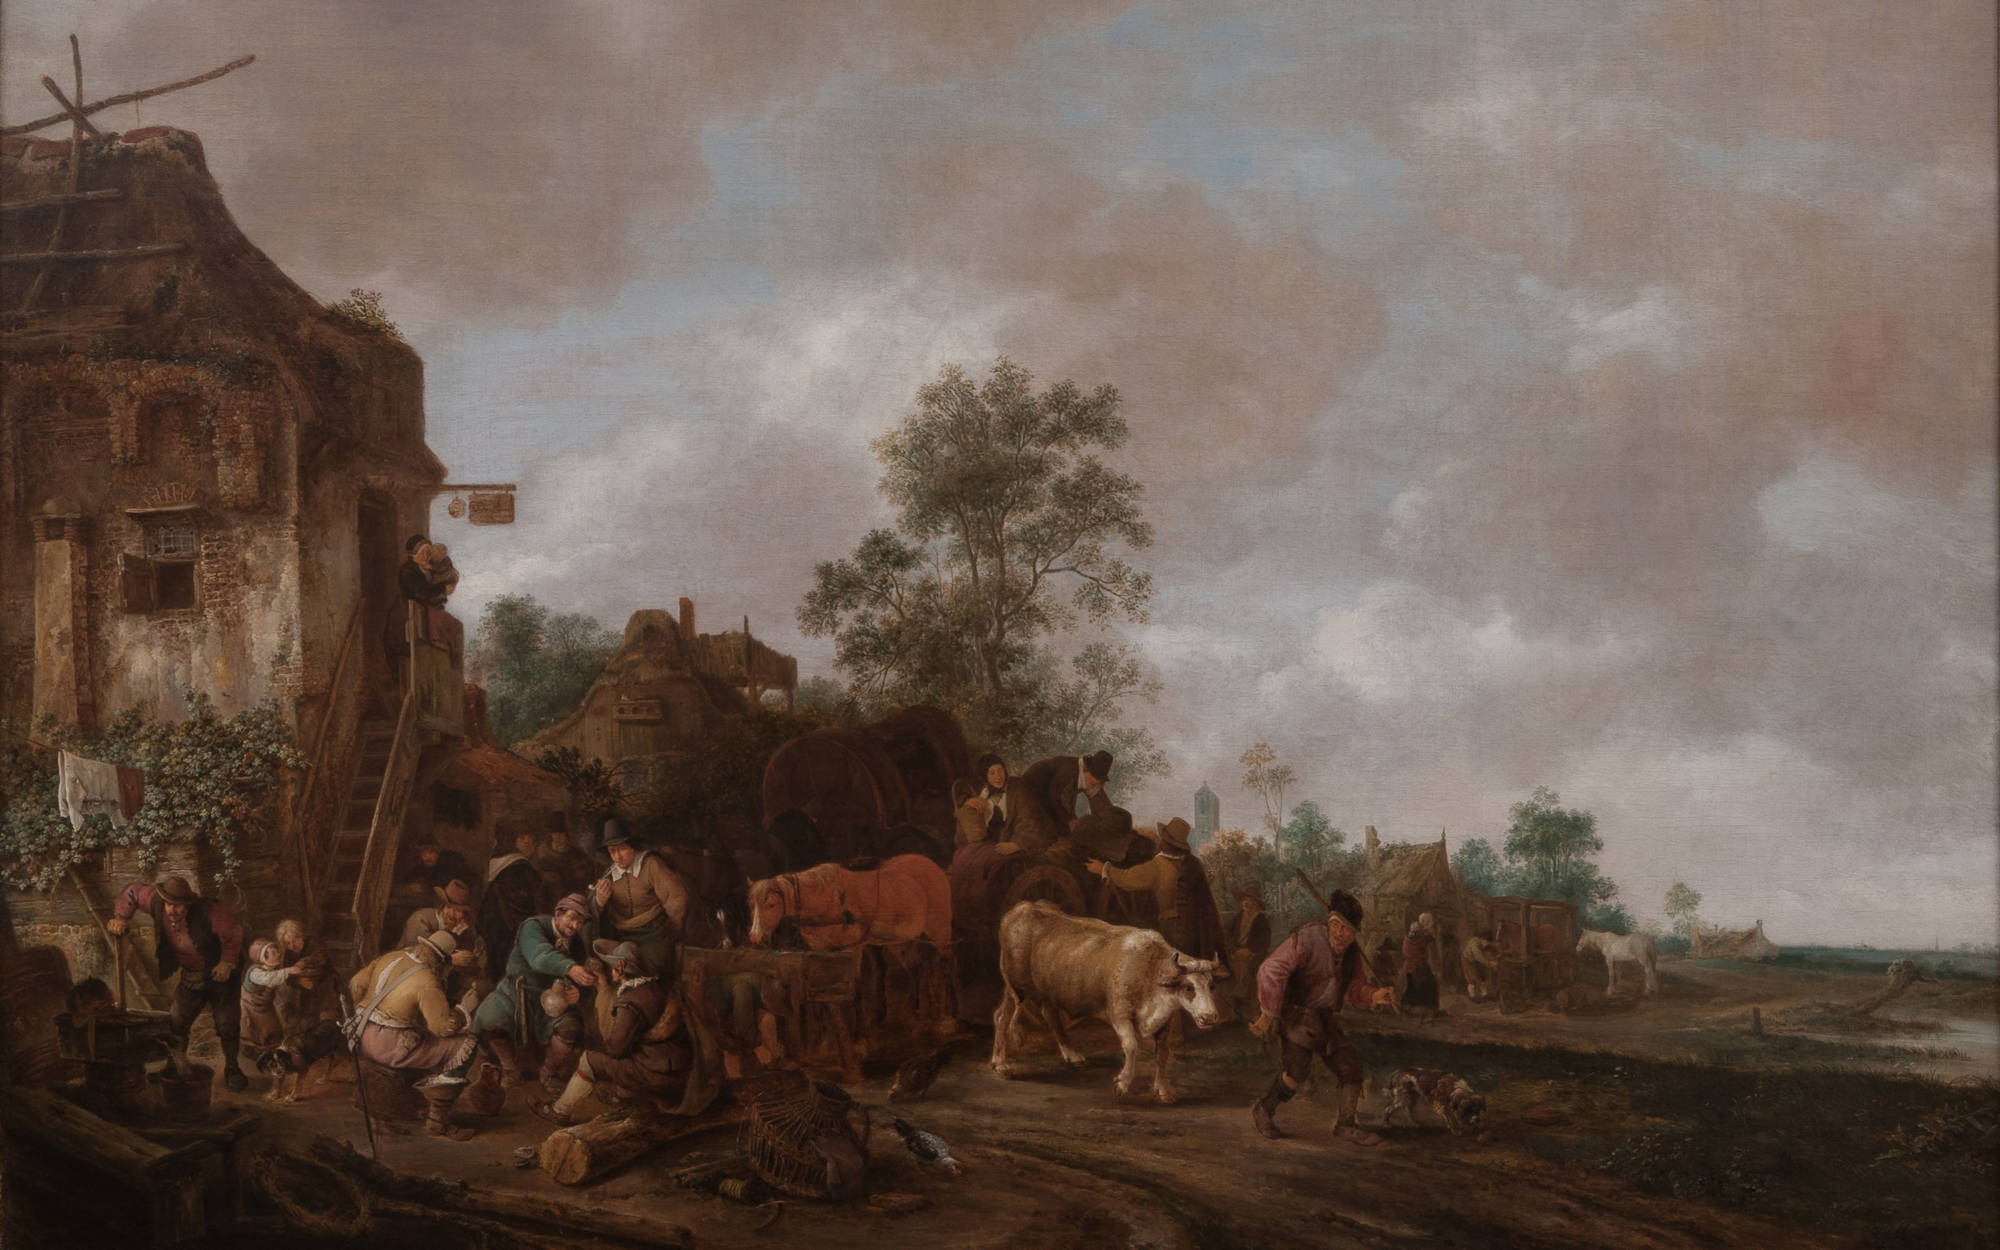 Isack van Ostade, Landscape with Cattle, Figures in Foreground in Front of an Inn, 1647; oil on canvas; 1345 x 1740mm; Waddesdon (National Trust); acc. no. 259; accepted under the Cultural Gifts Scheme by HM Government and allocated to the National Trust, 2016.